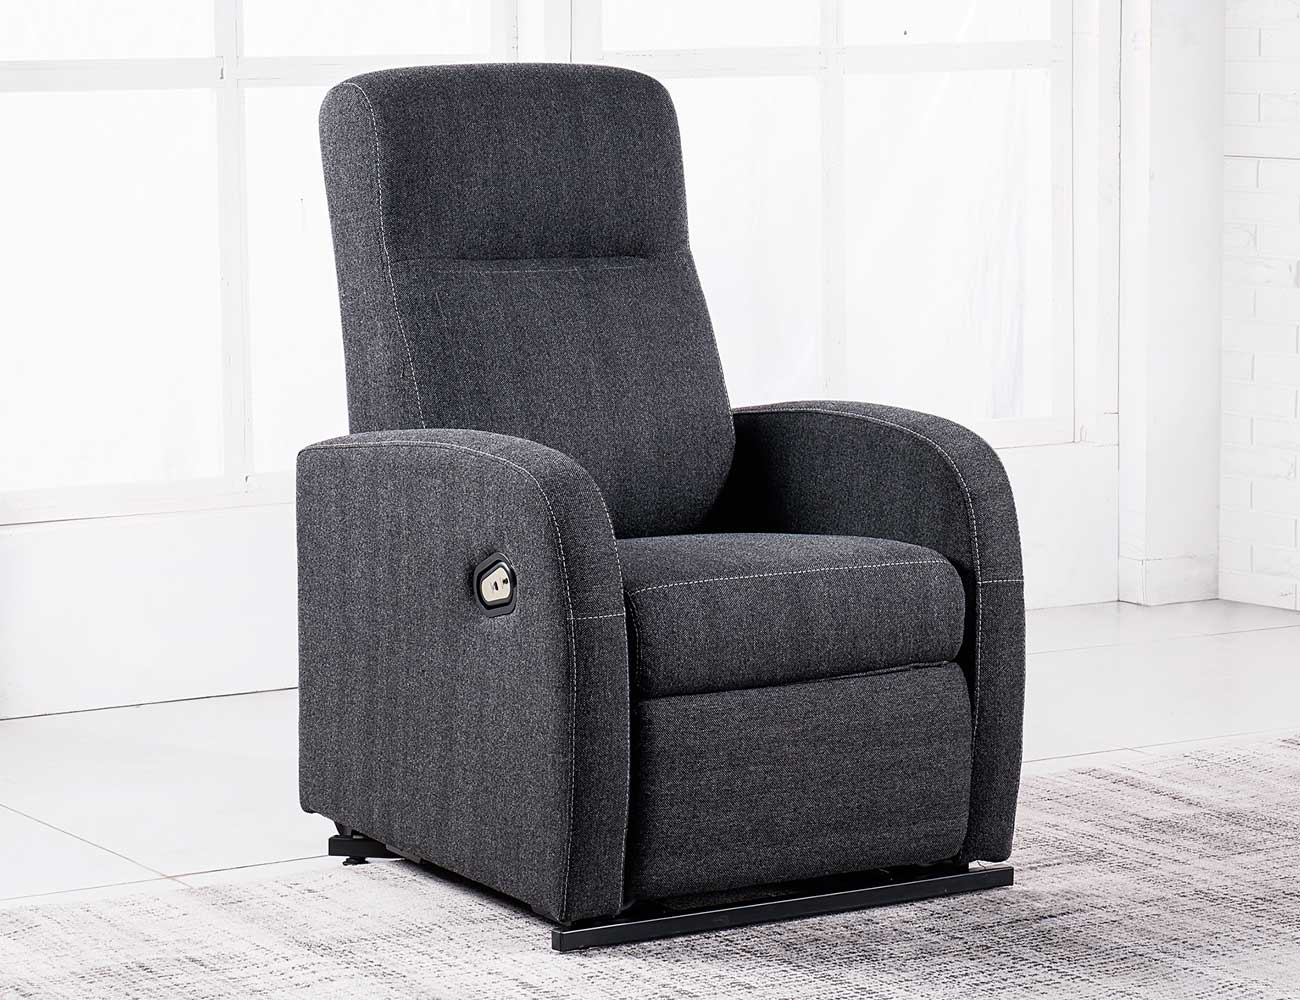 Sillon relax levanta personas power lift gris marengo